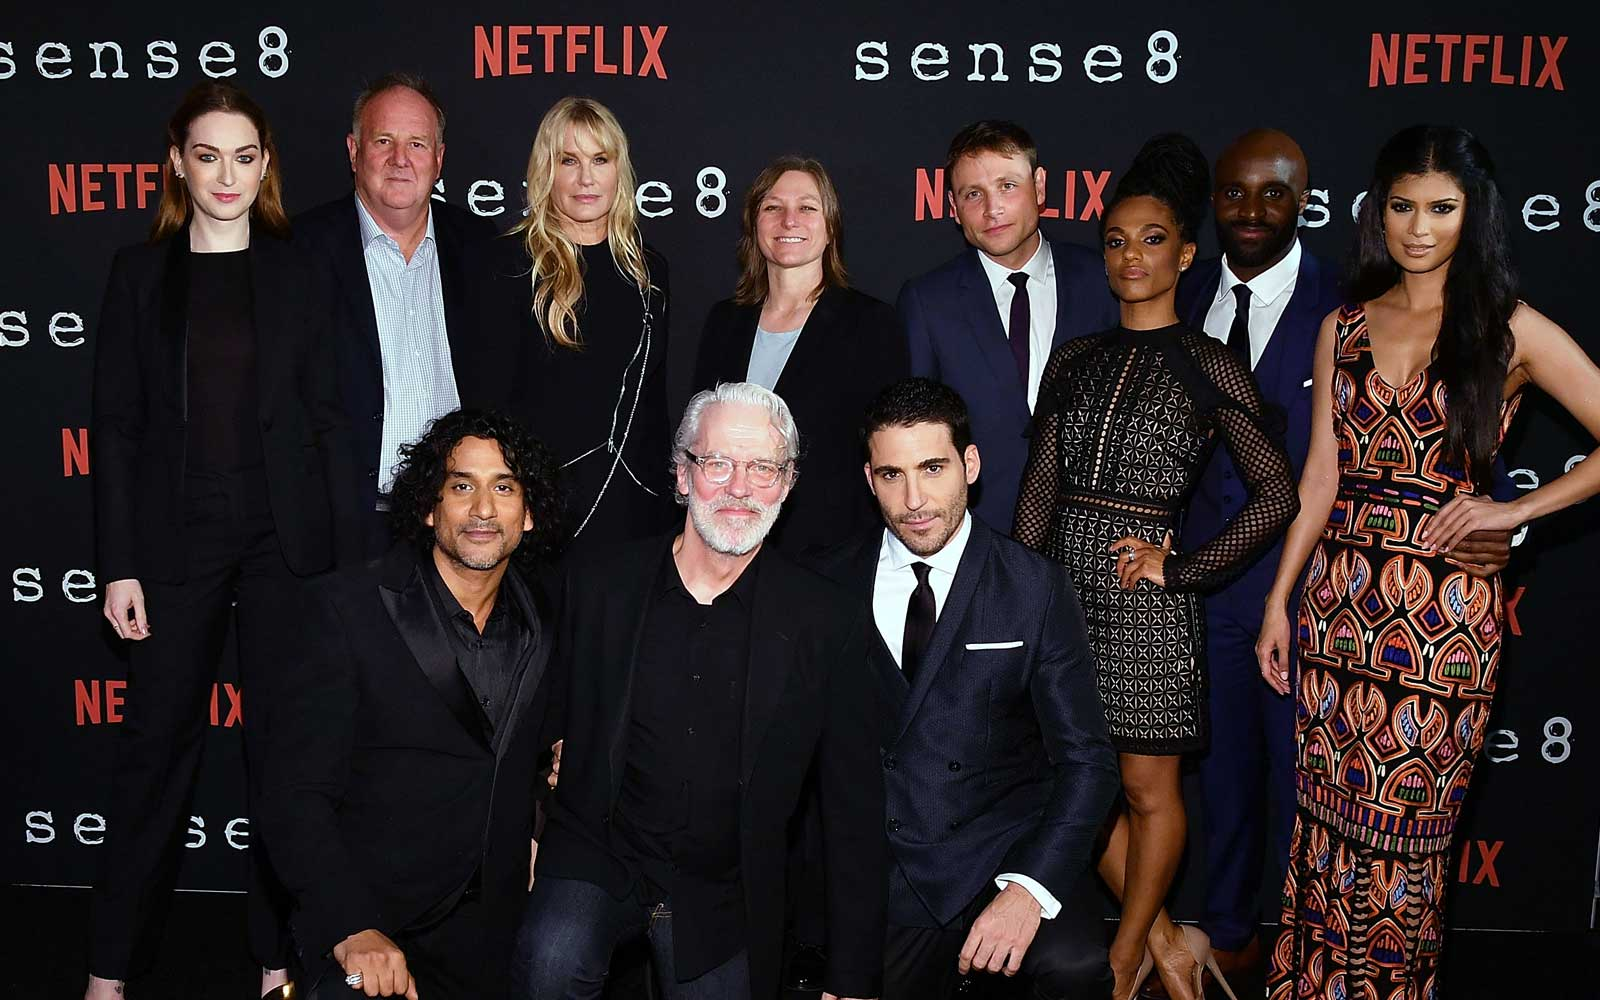 The cast and crew of Sense8 reveal their favorite filming locations